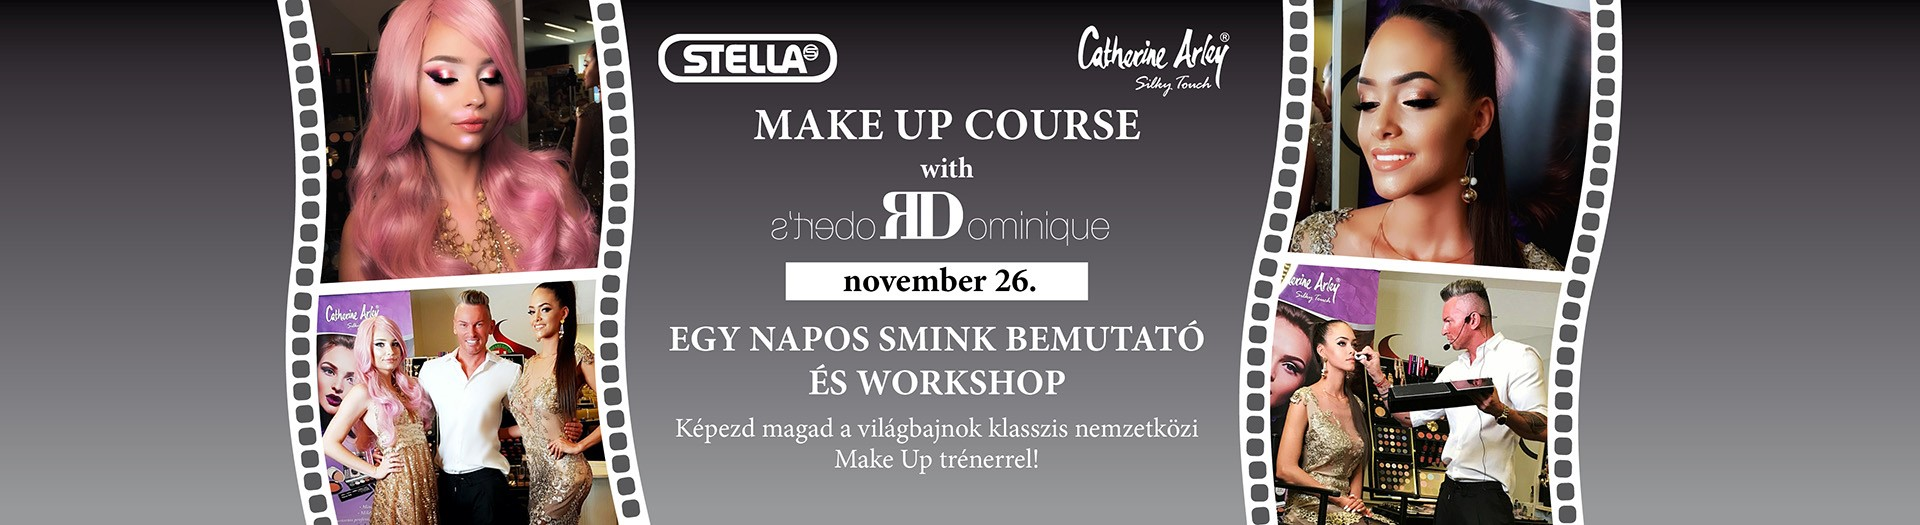 content/dominique_roberts_make_up_course_november_26.jpg